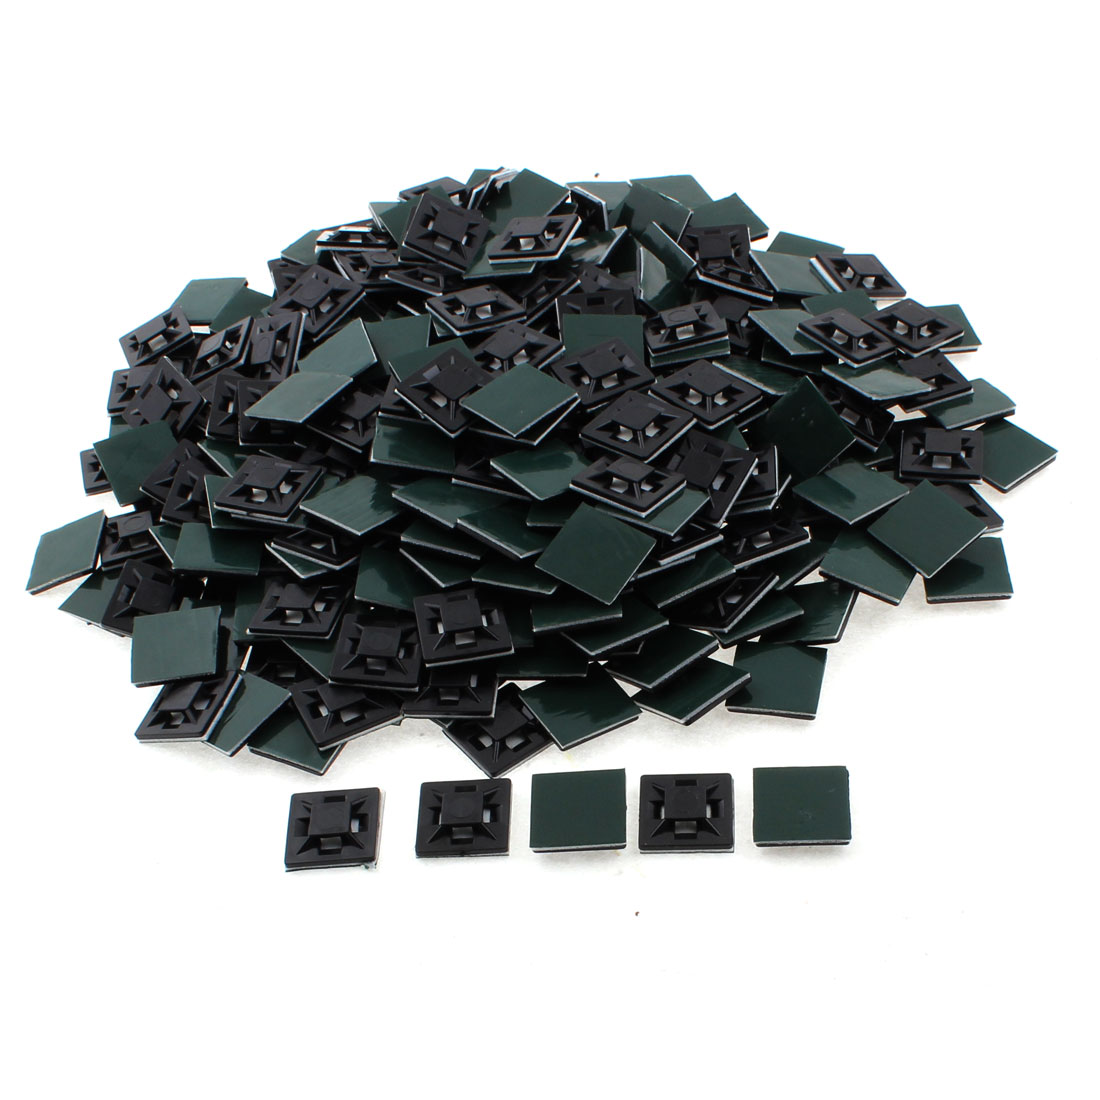 21mm x 21mm x 5mm Square Self Adhesive Cable Tie Mount Base Holder Black 300pcs